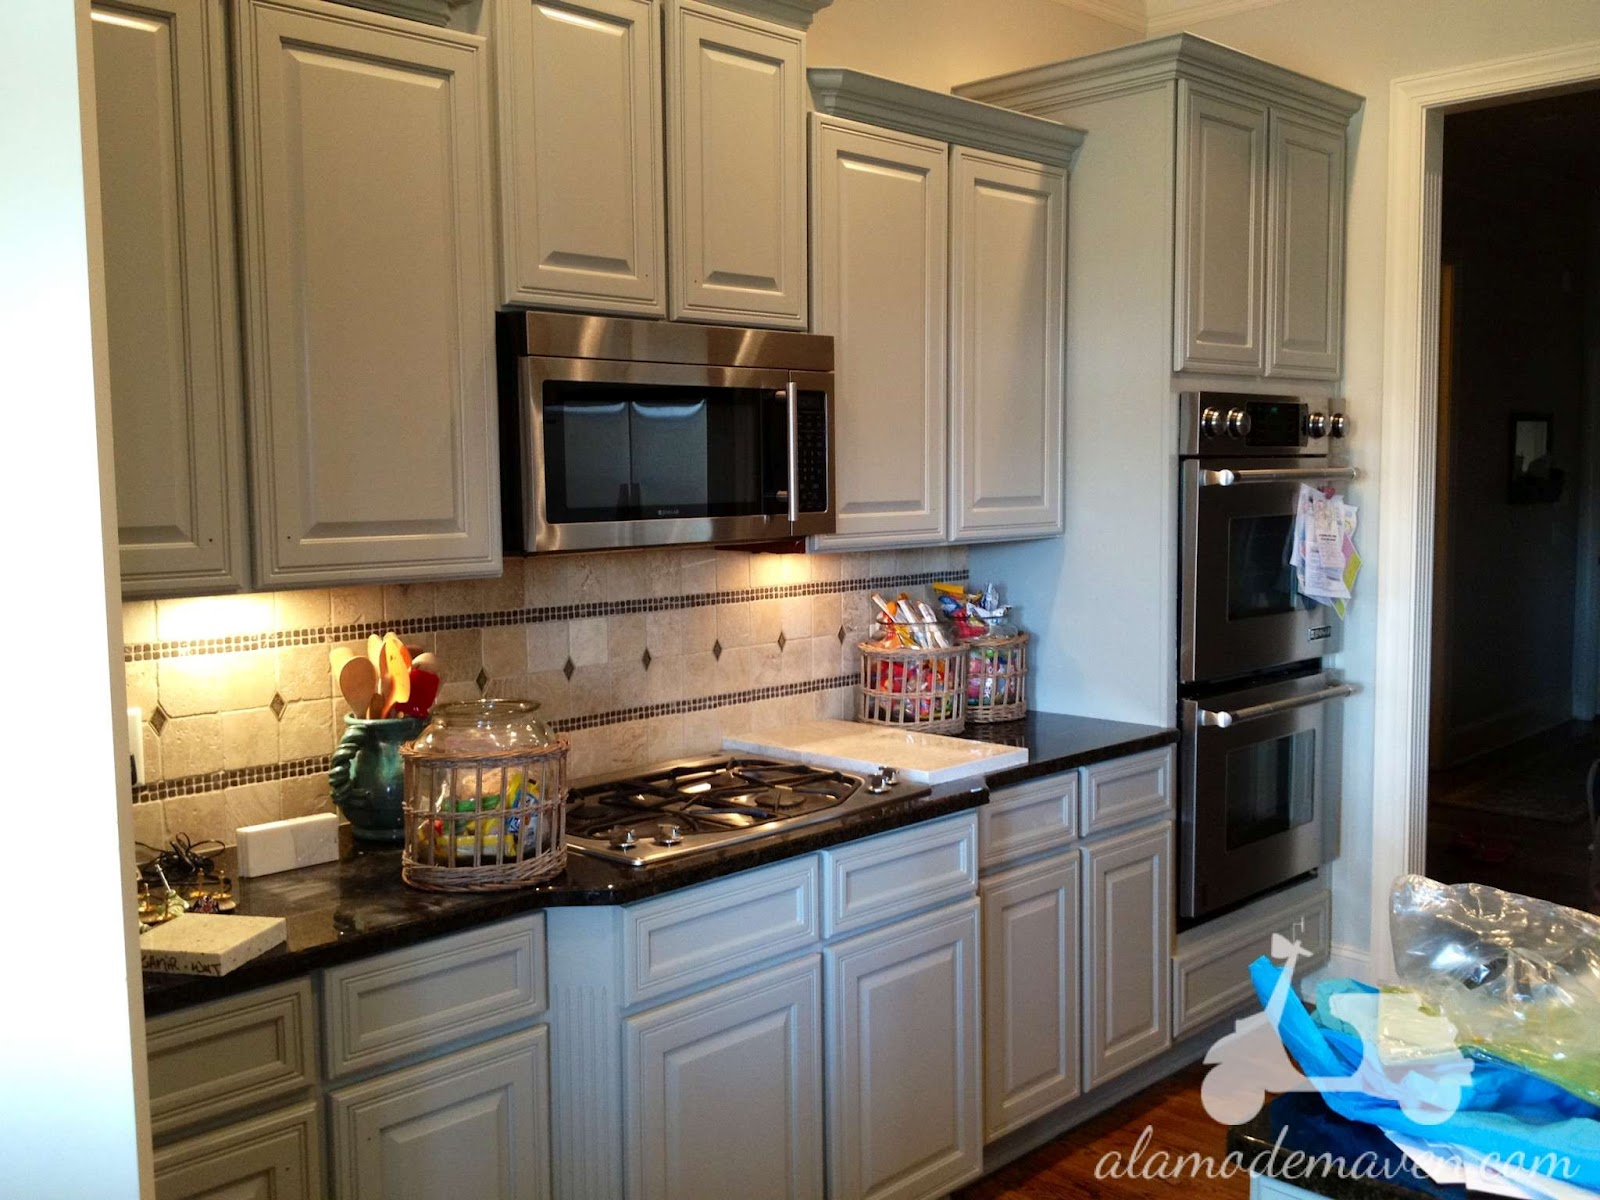 Painted Kitchen Cabinets Composite Sinks Home Design And Decor Reviews